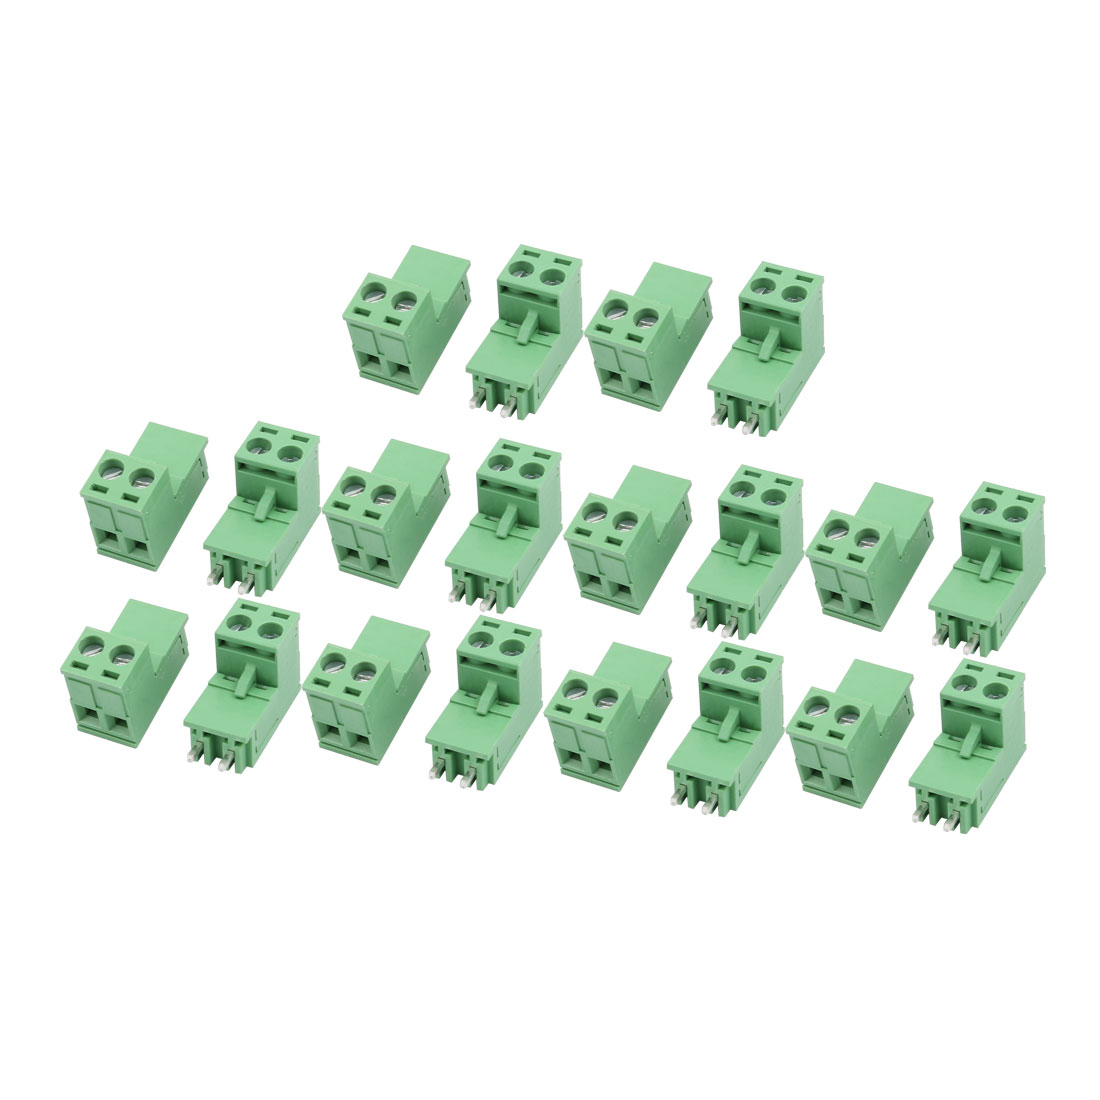 10Sets AC 300V 10A 5.08mm Pitch 2P PCB Terminal Block Female Male Wire Connector